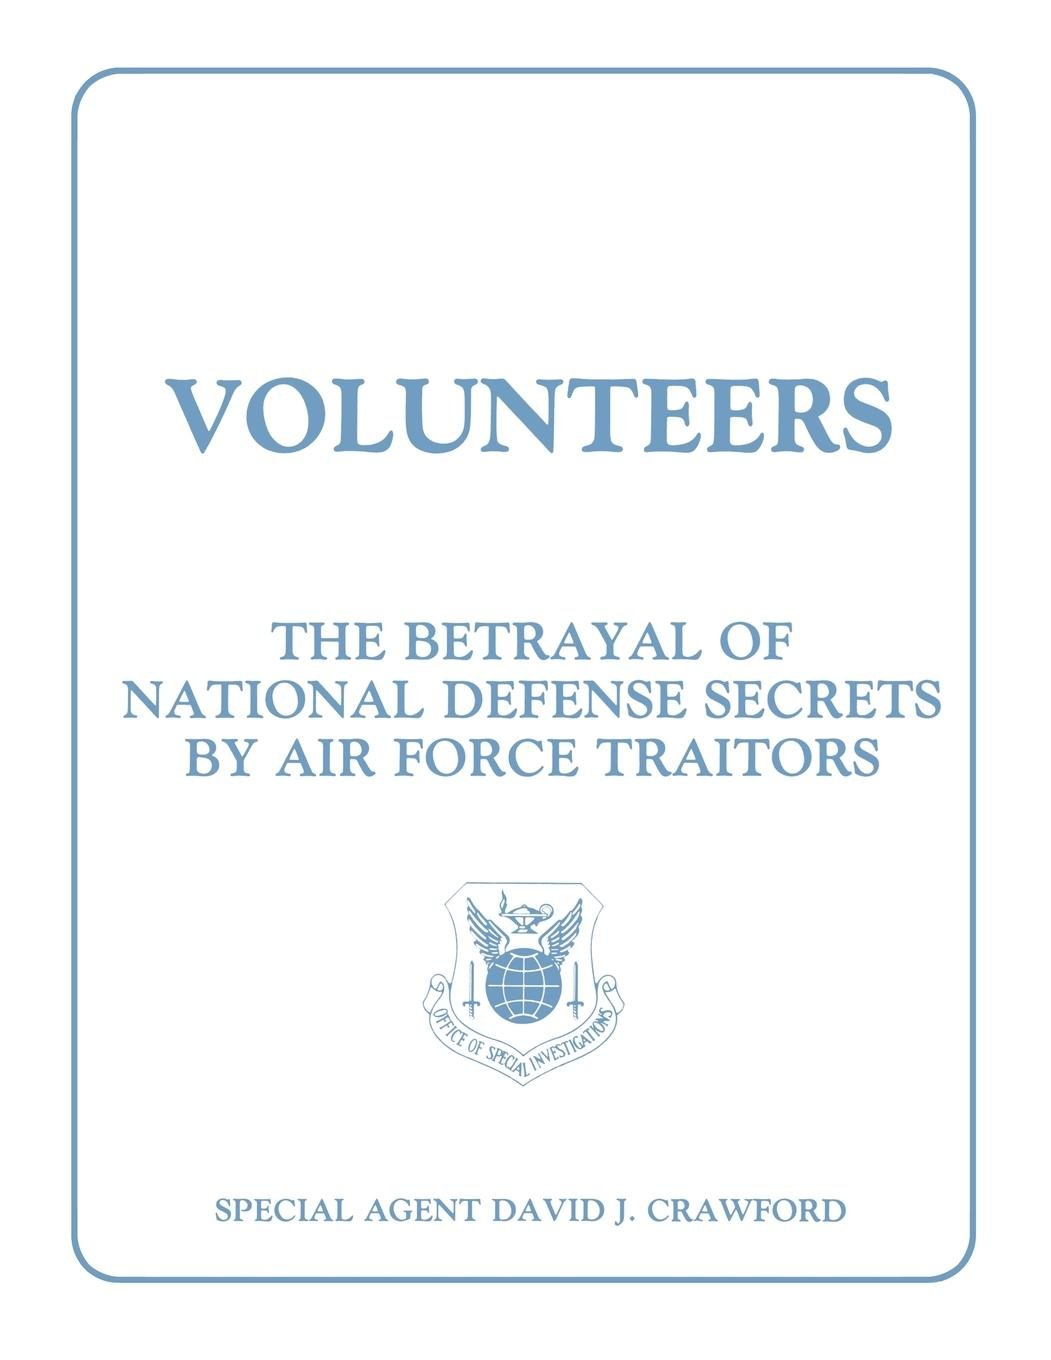 Volunteers: The Betrayal of National Defense Secrets by Air Force Traitors ebook